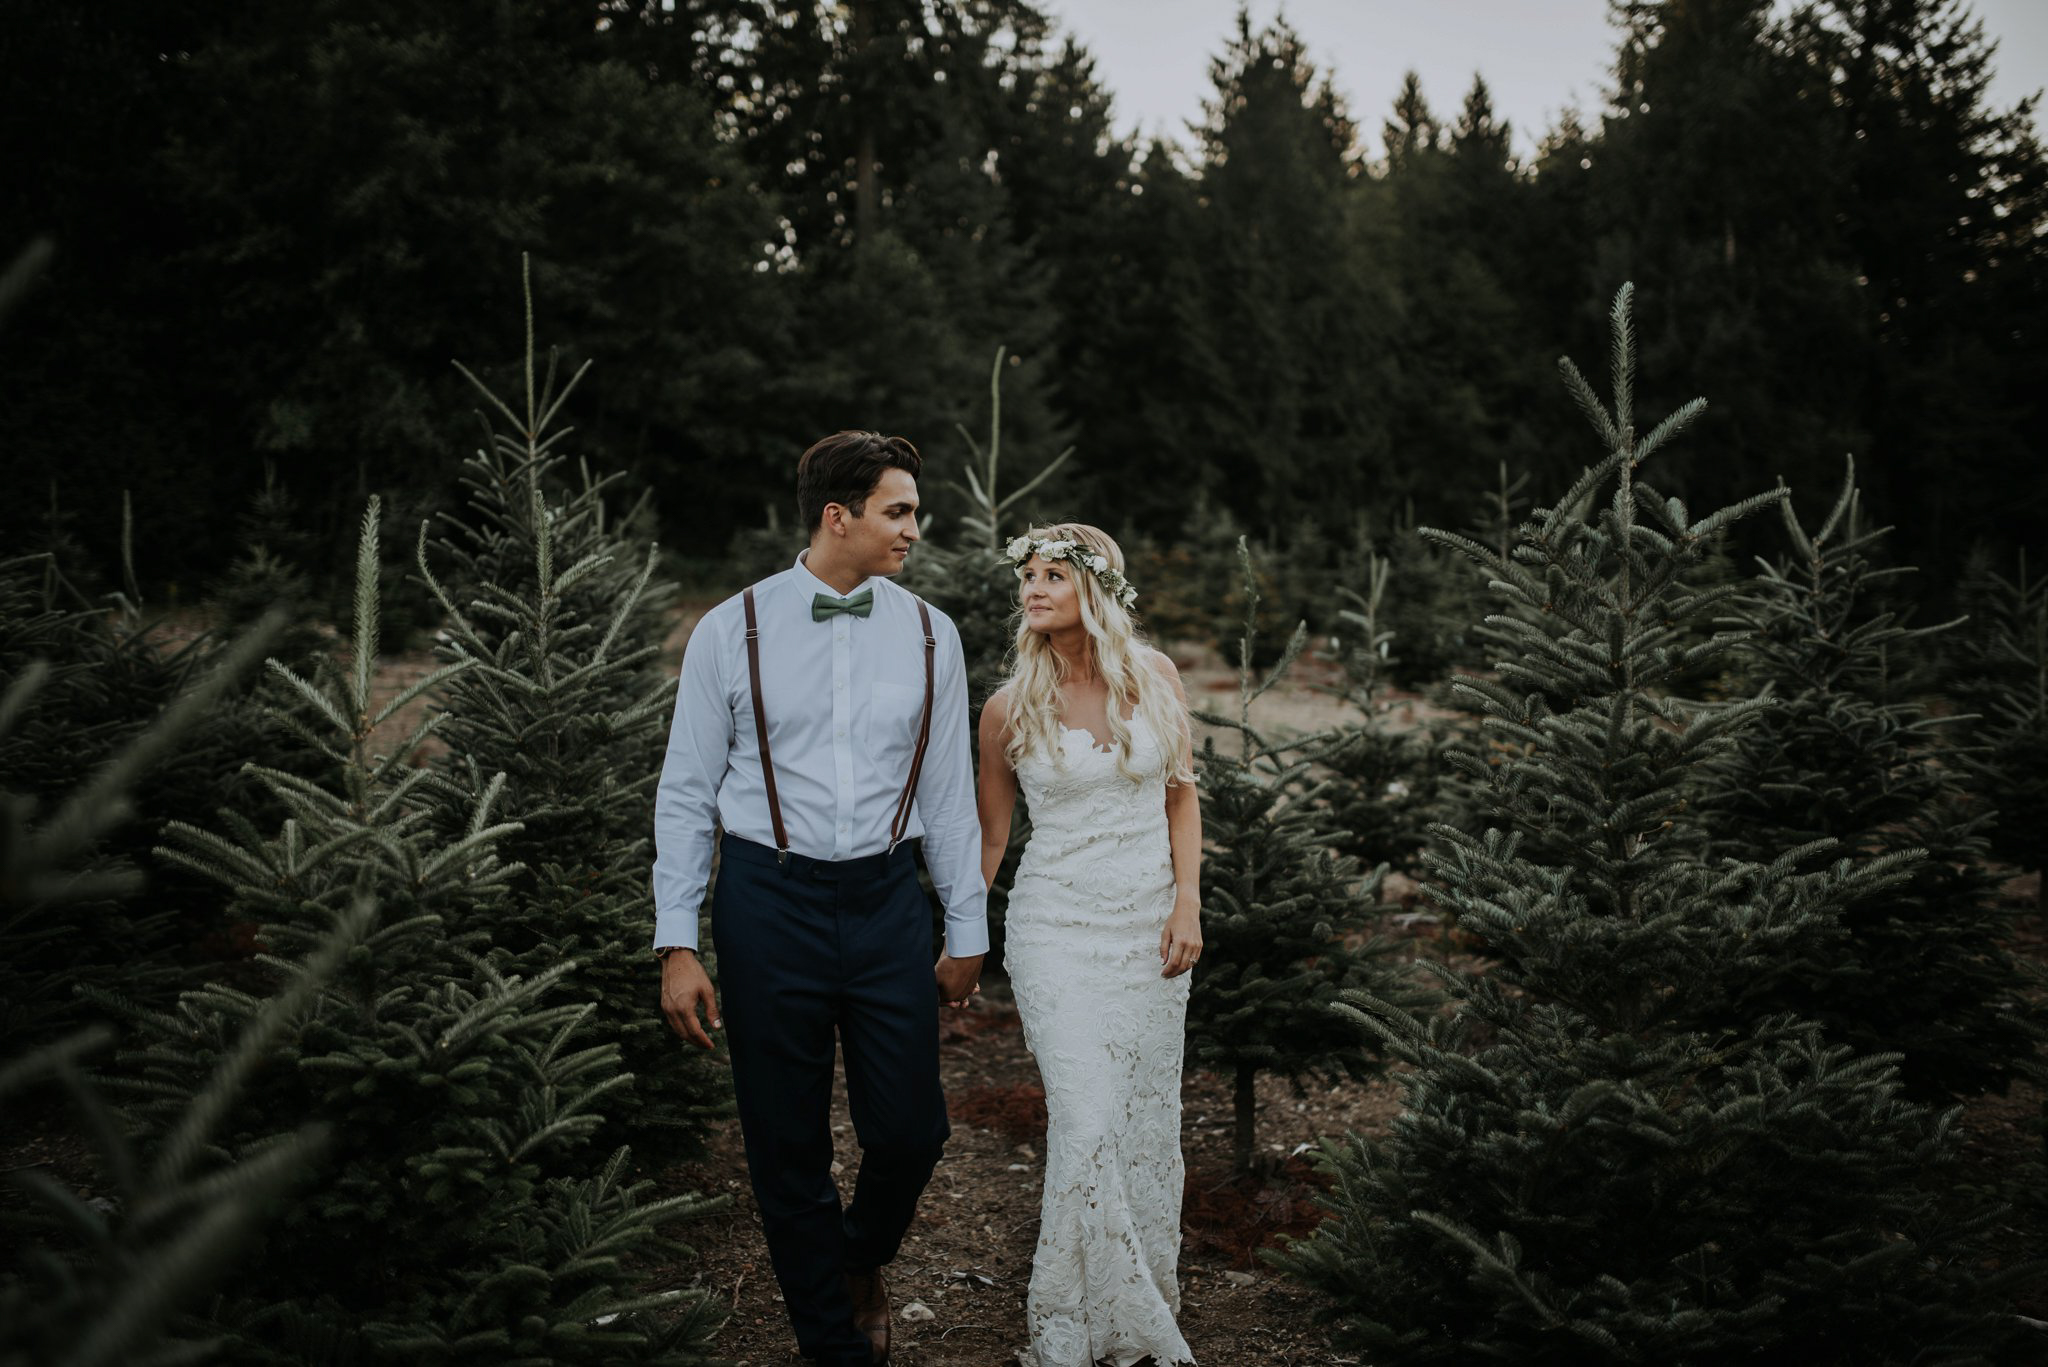 trinity-tree-farm-issaquah-washington-wedding-seattle-lifestyle-photographer-caitlyn-nikula-photography-103.jpg